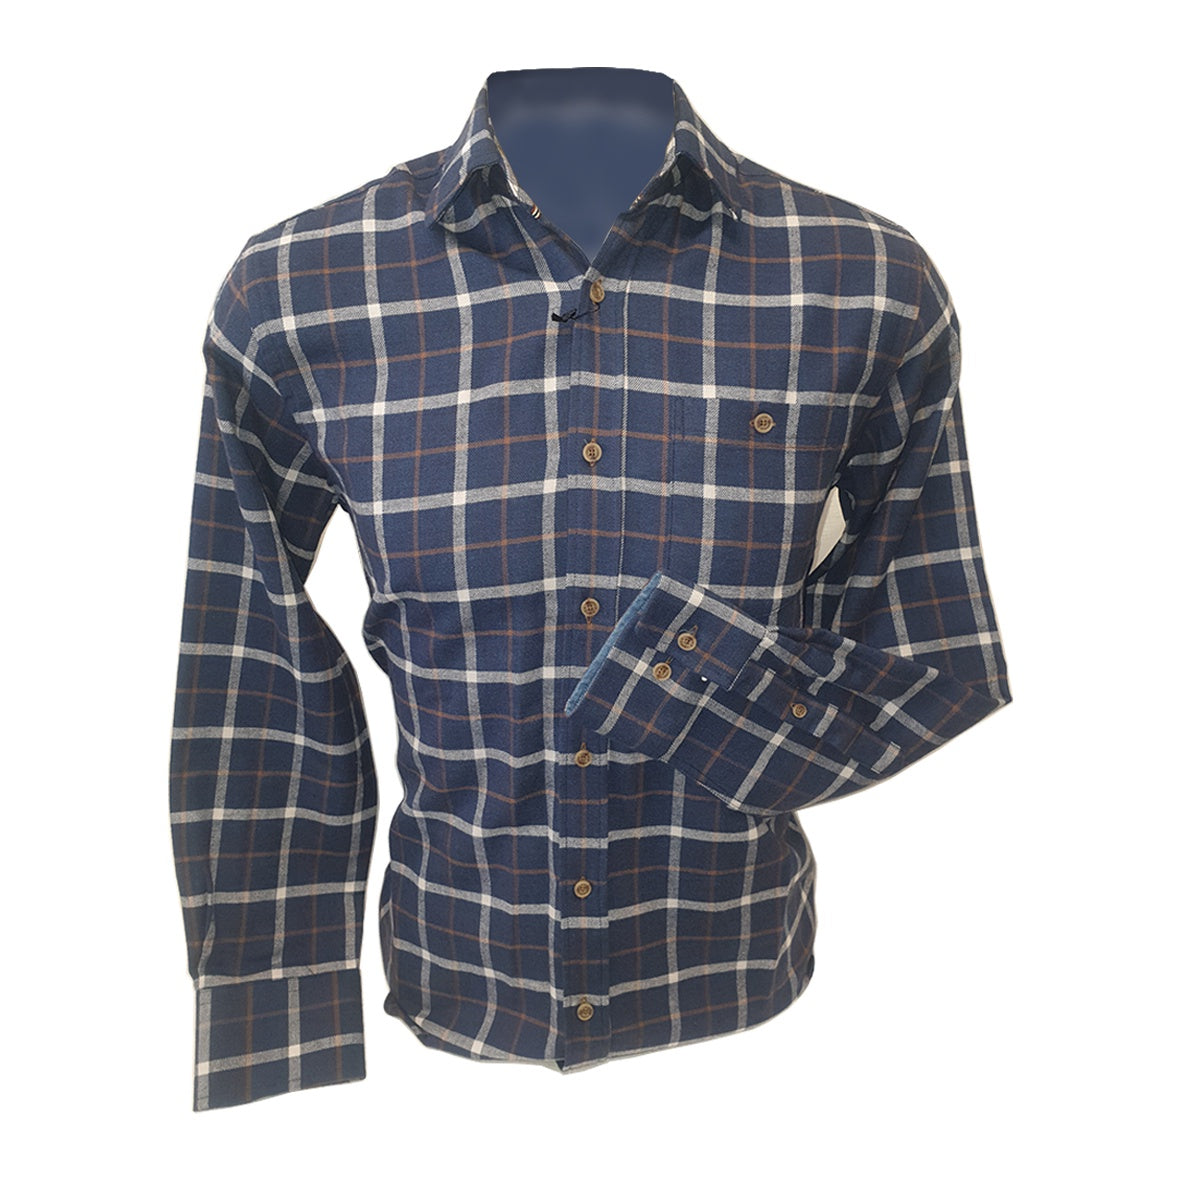 Lifestyle 9592 Wool Blend Shirt